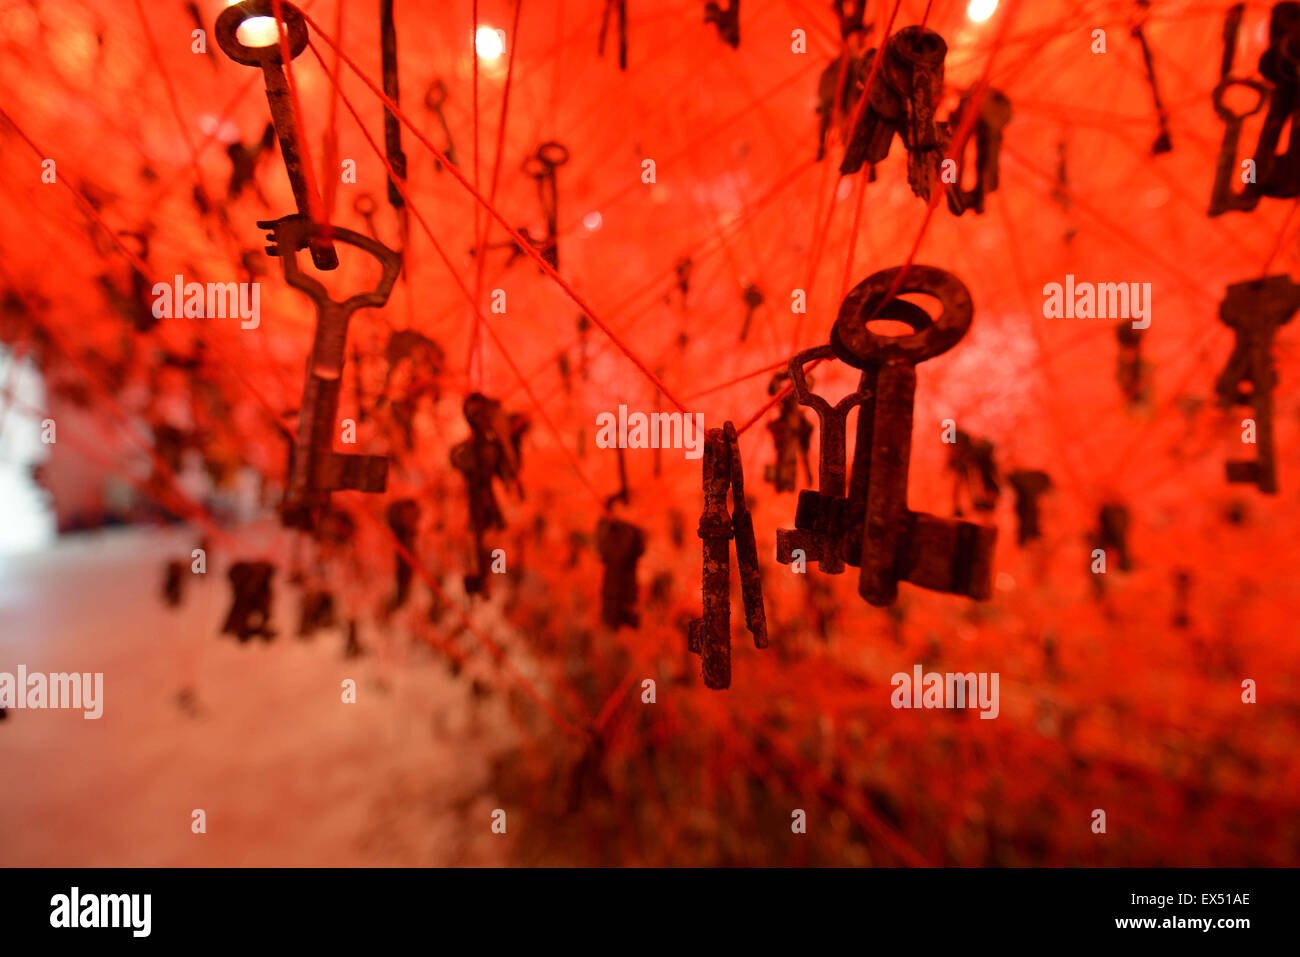 The 56th International Art Exhibition titled 'All the World's Futures' at the Giardini  Featuring: Atmosphere - Stock Image